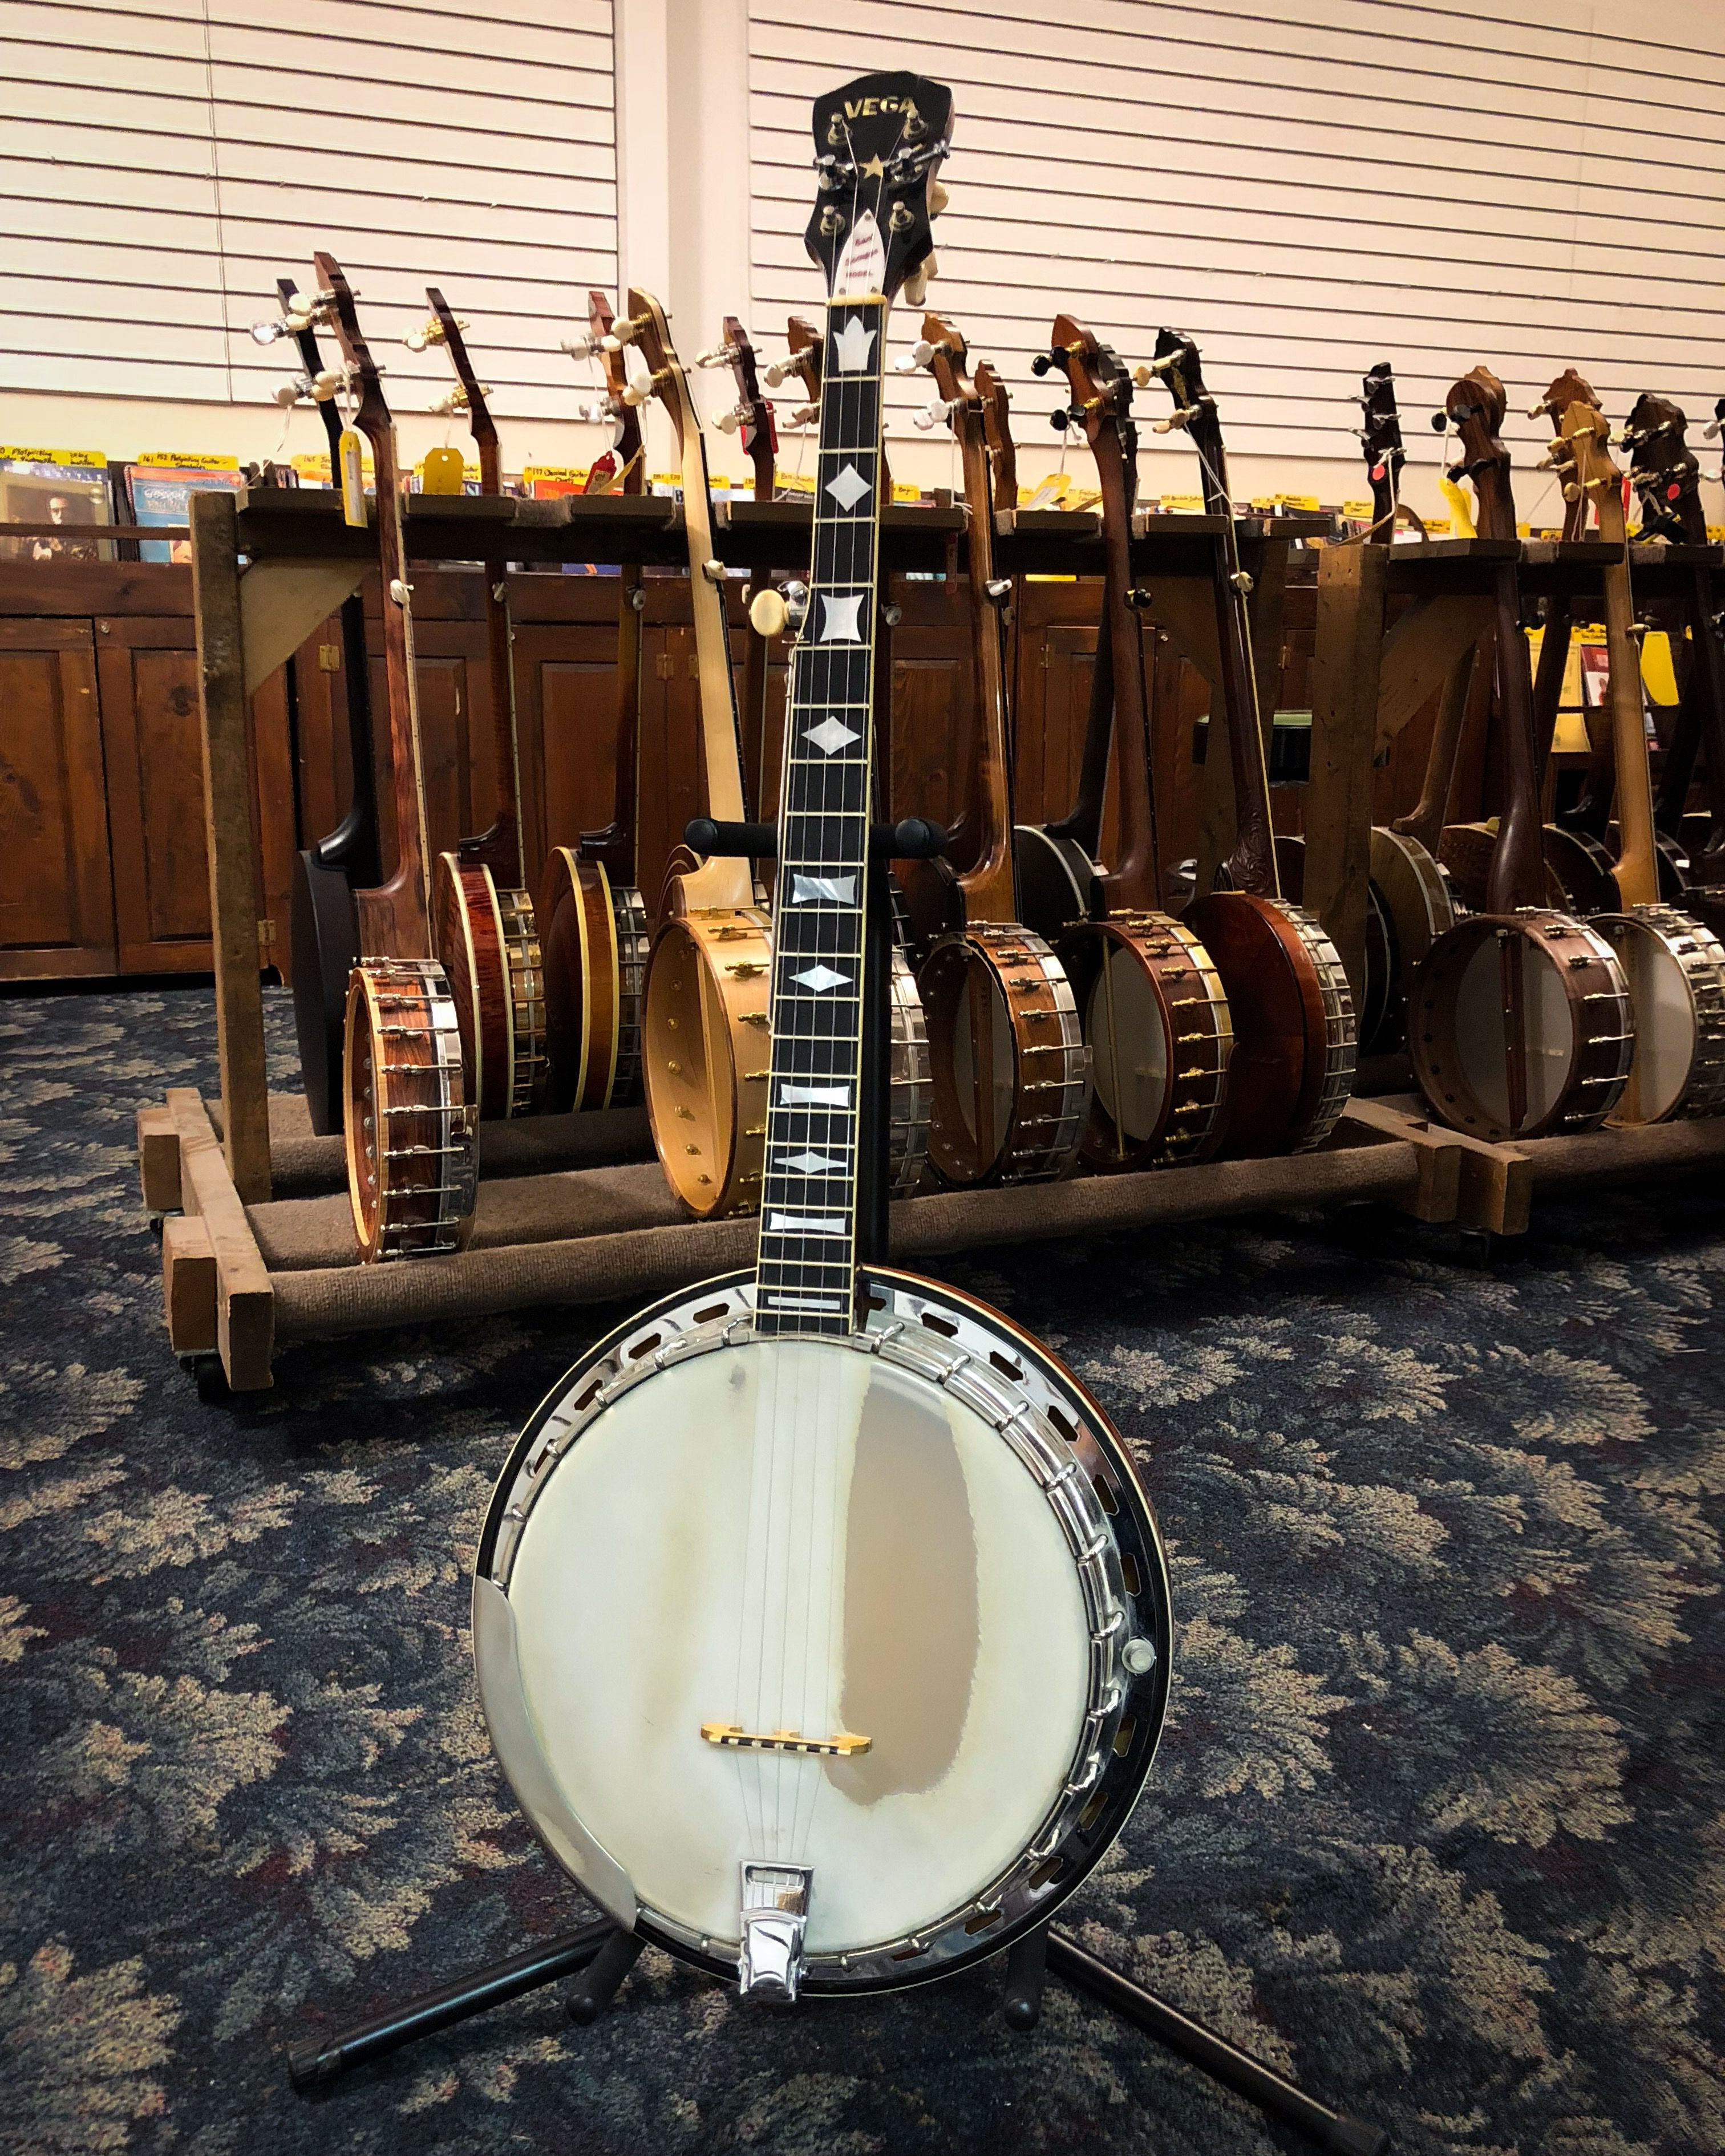 This Vega Earl Scruggs STII banjo has been put to work, but